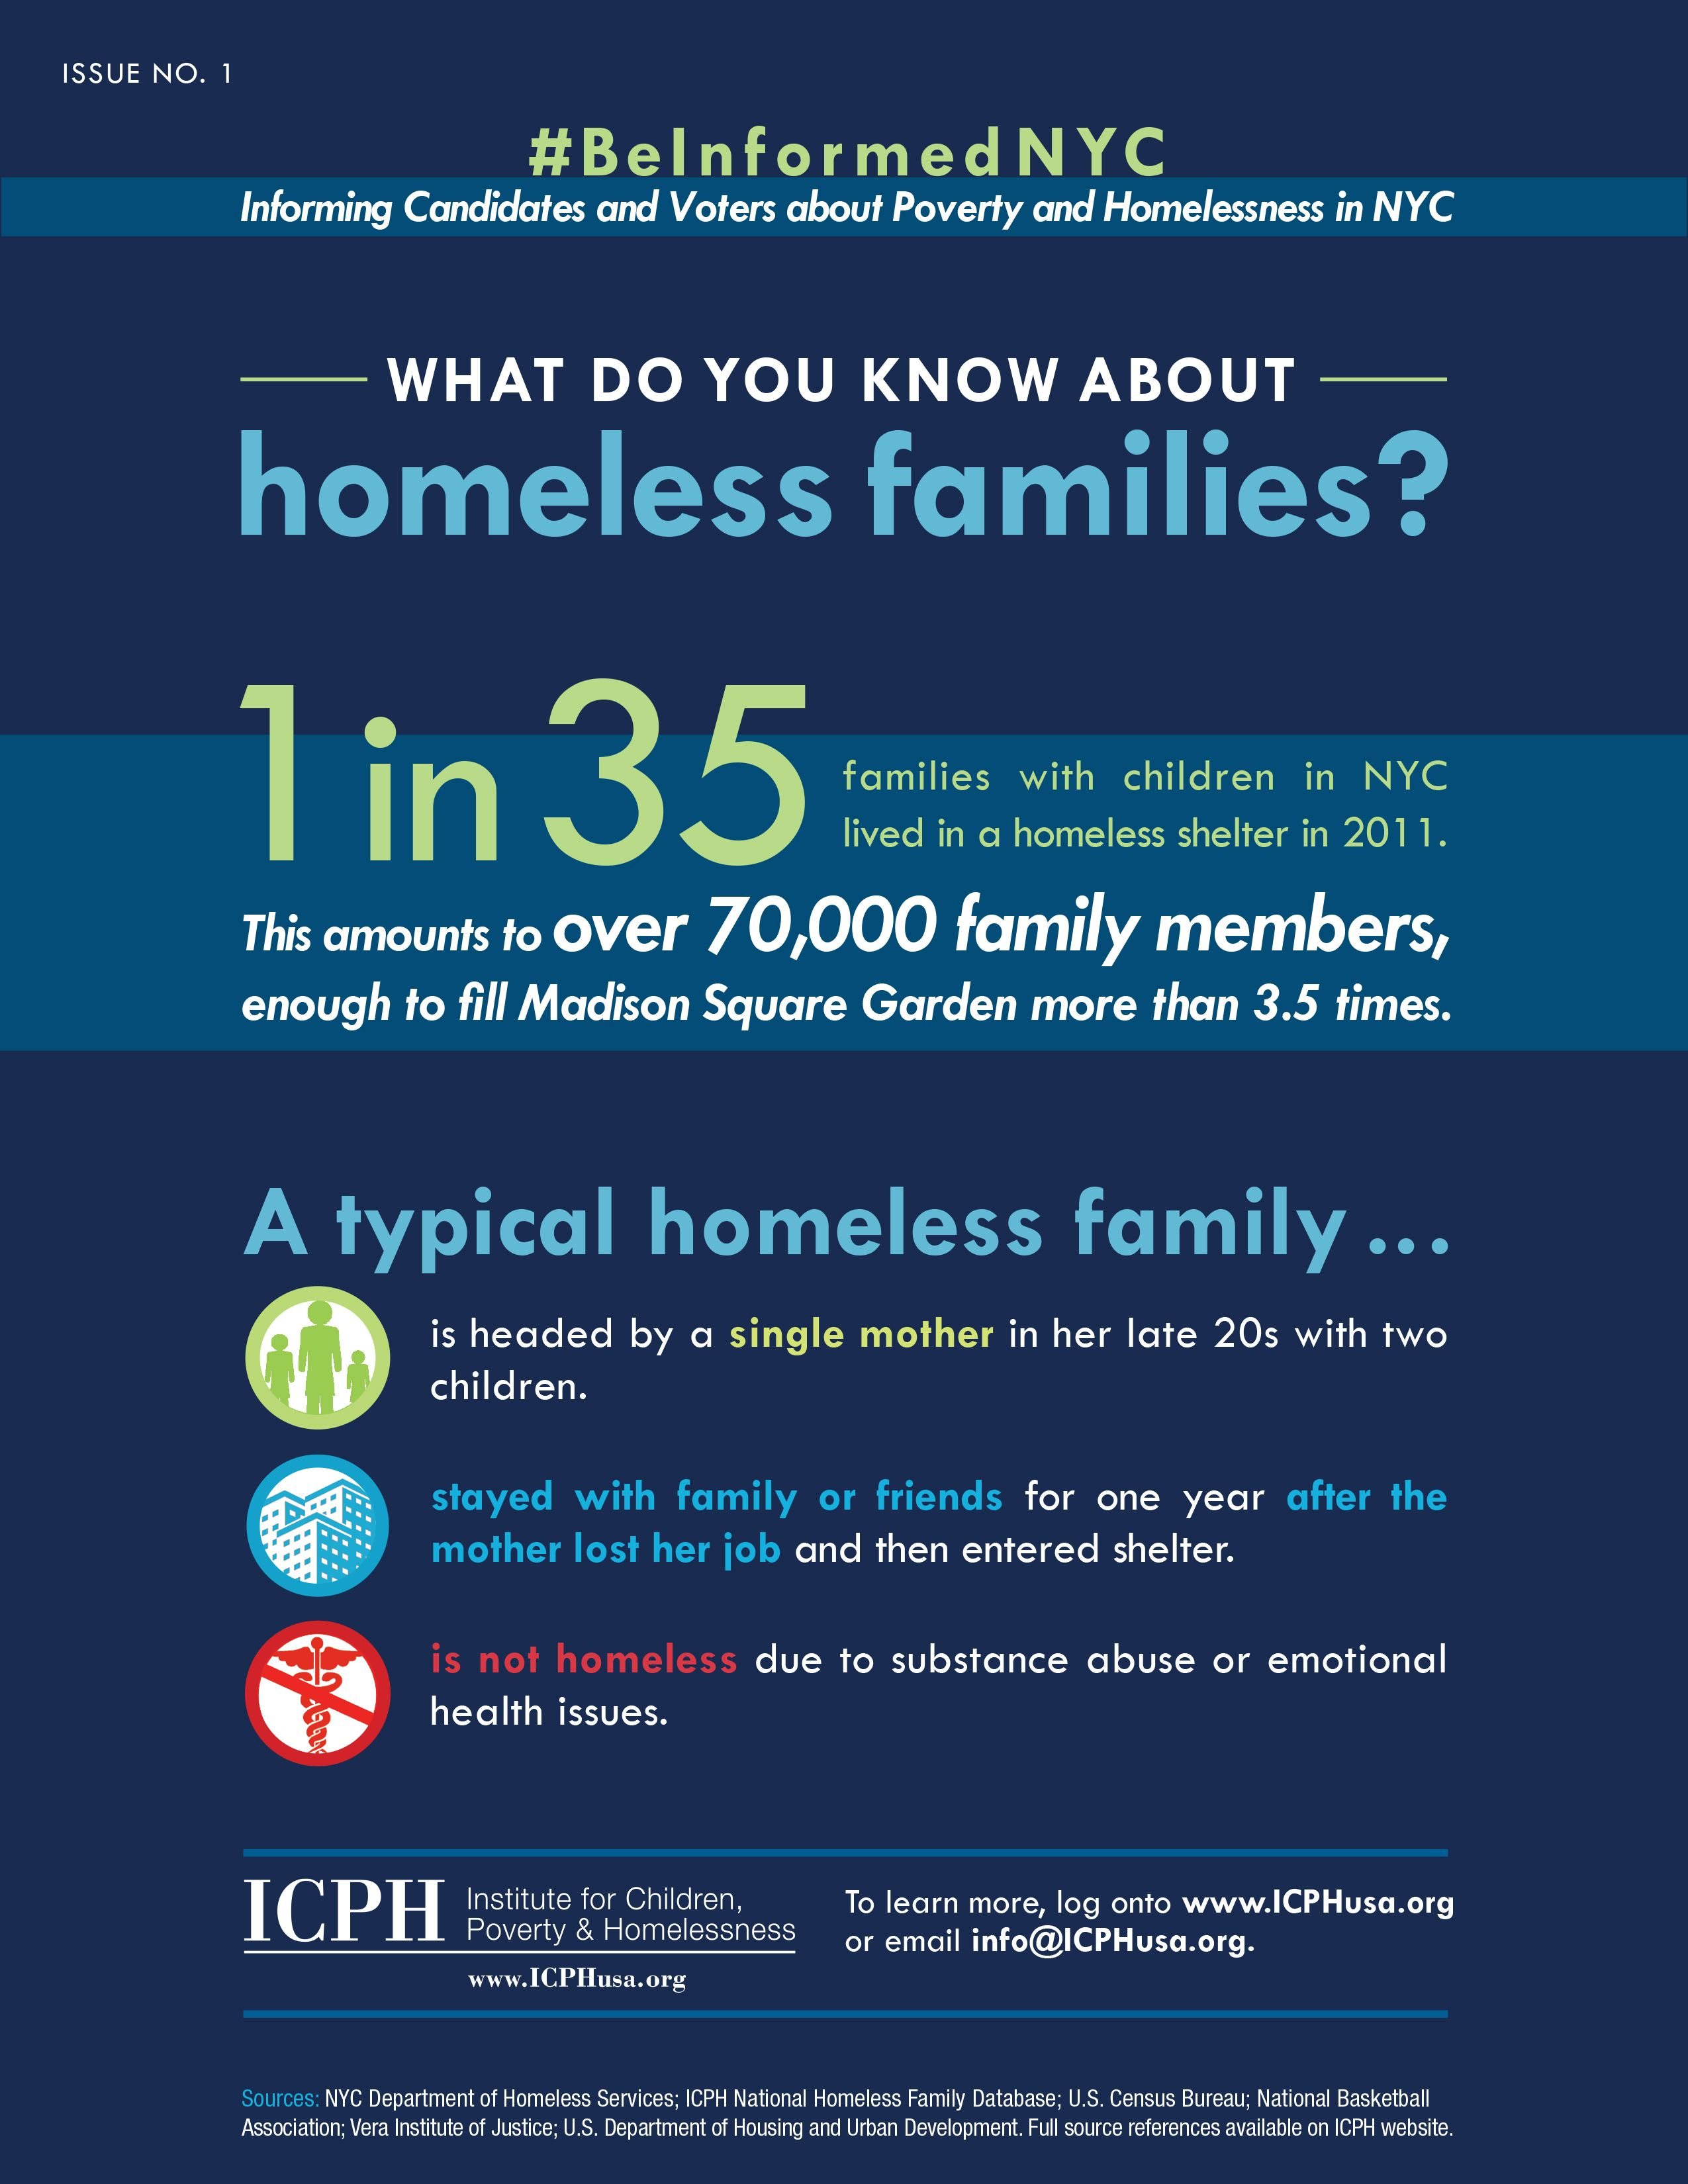 Poverty And Homelessness Info Graphic By Icph For The Upcoming Nyc Mayoral Election Poverty Infographic Homeless Families